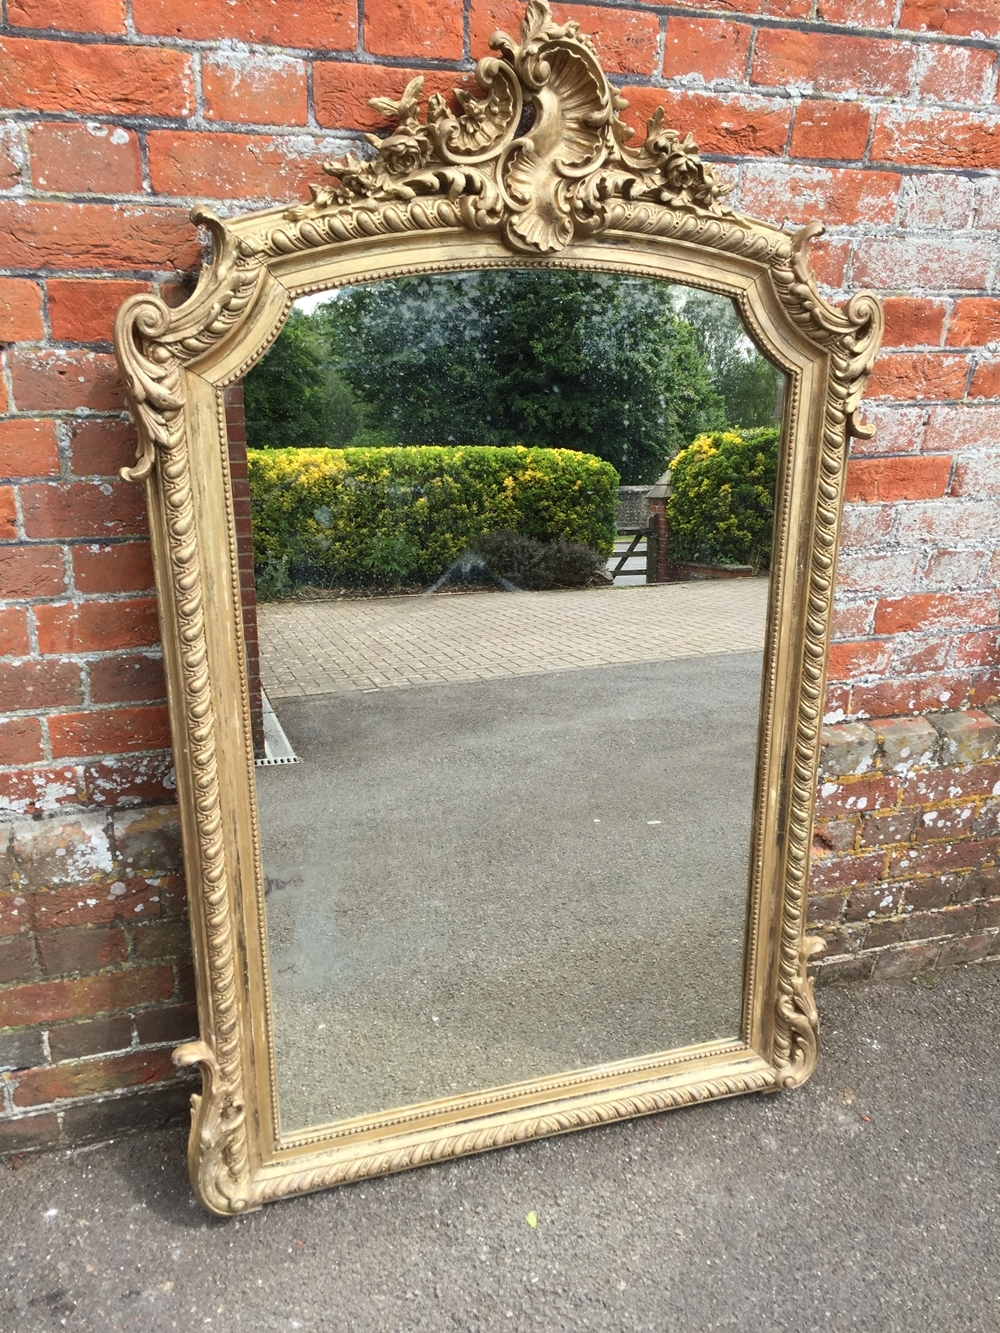 A Delightful Antique 19th Century French Carved Wood Gesso Intended For Ornate Gilt Mirrors (Image 1 of 15)